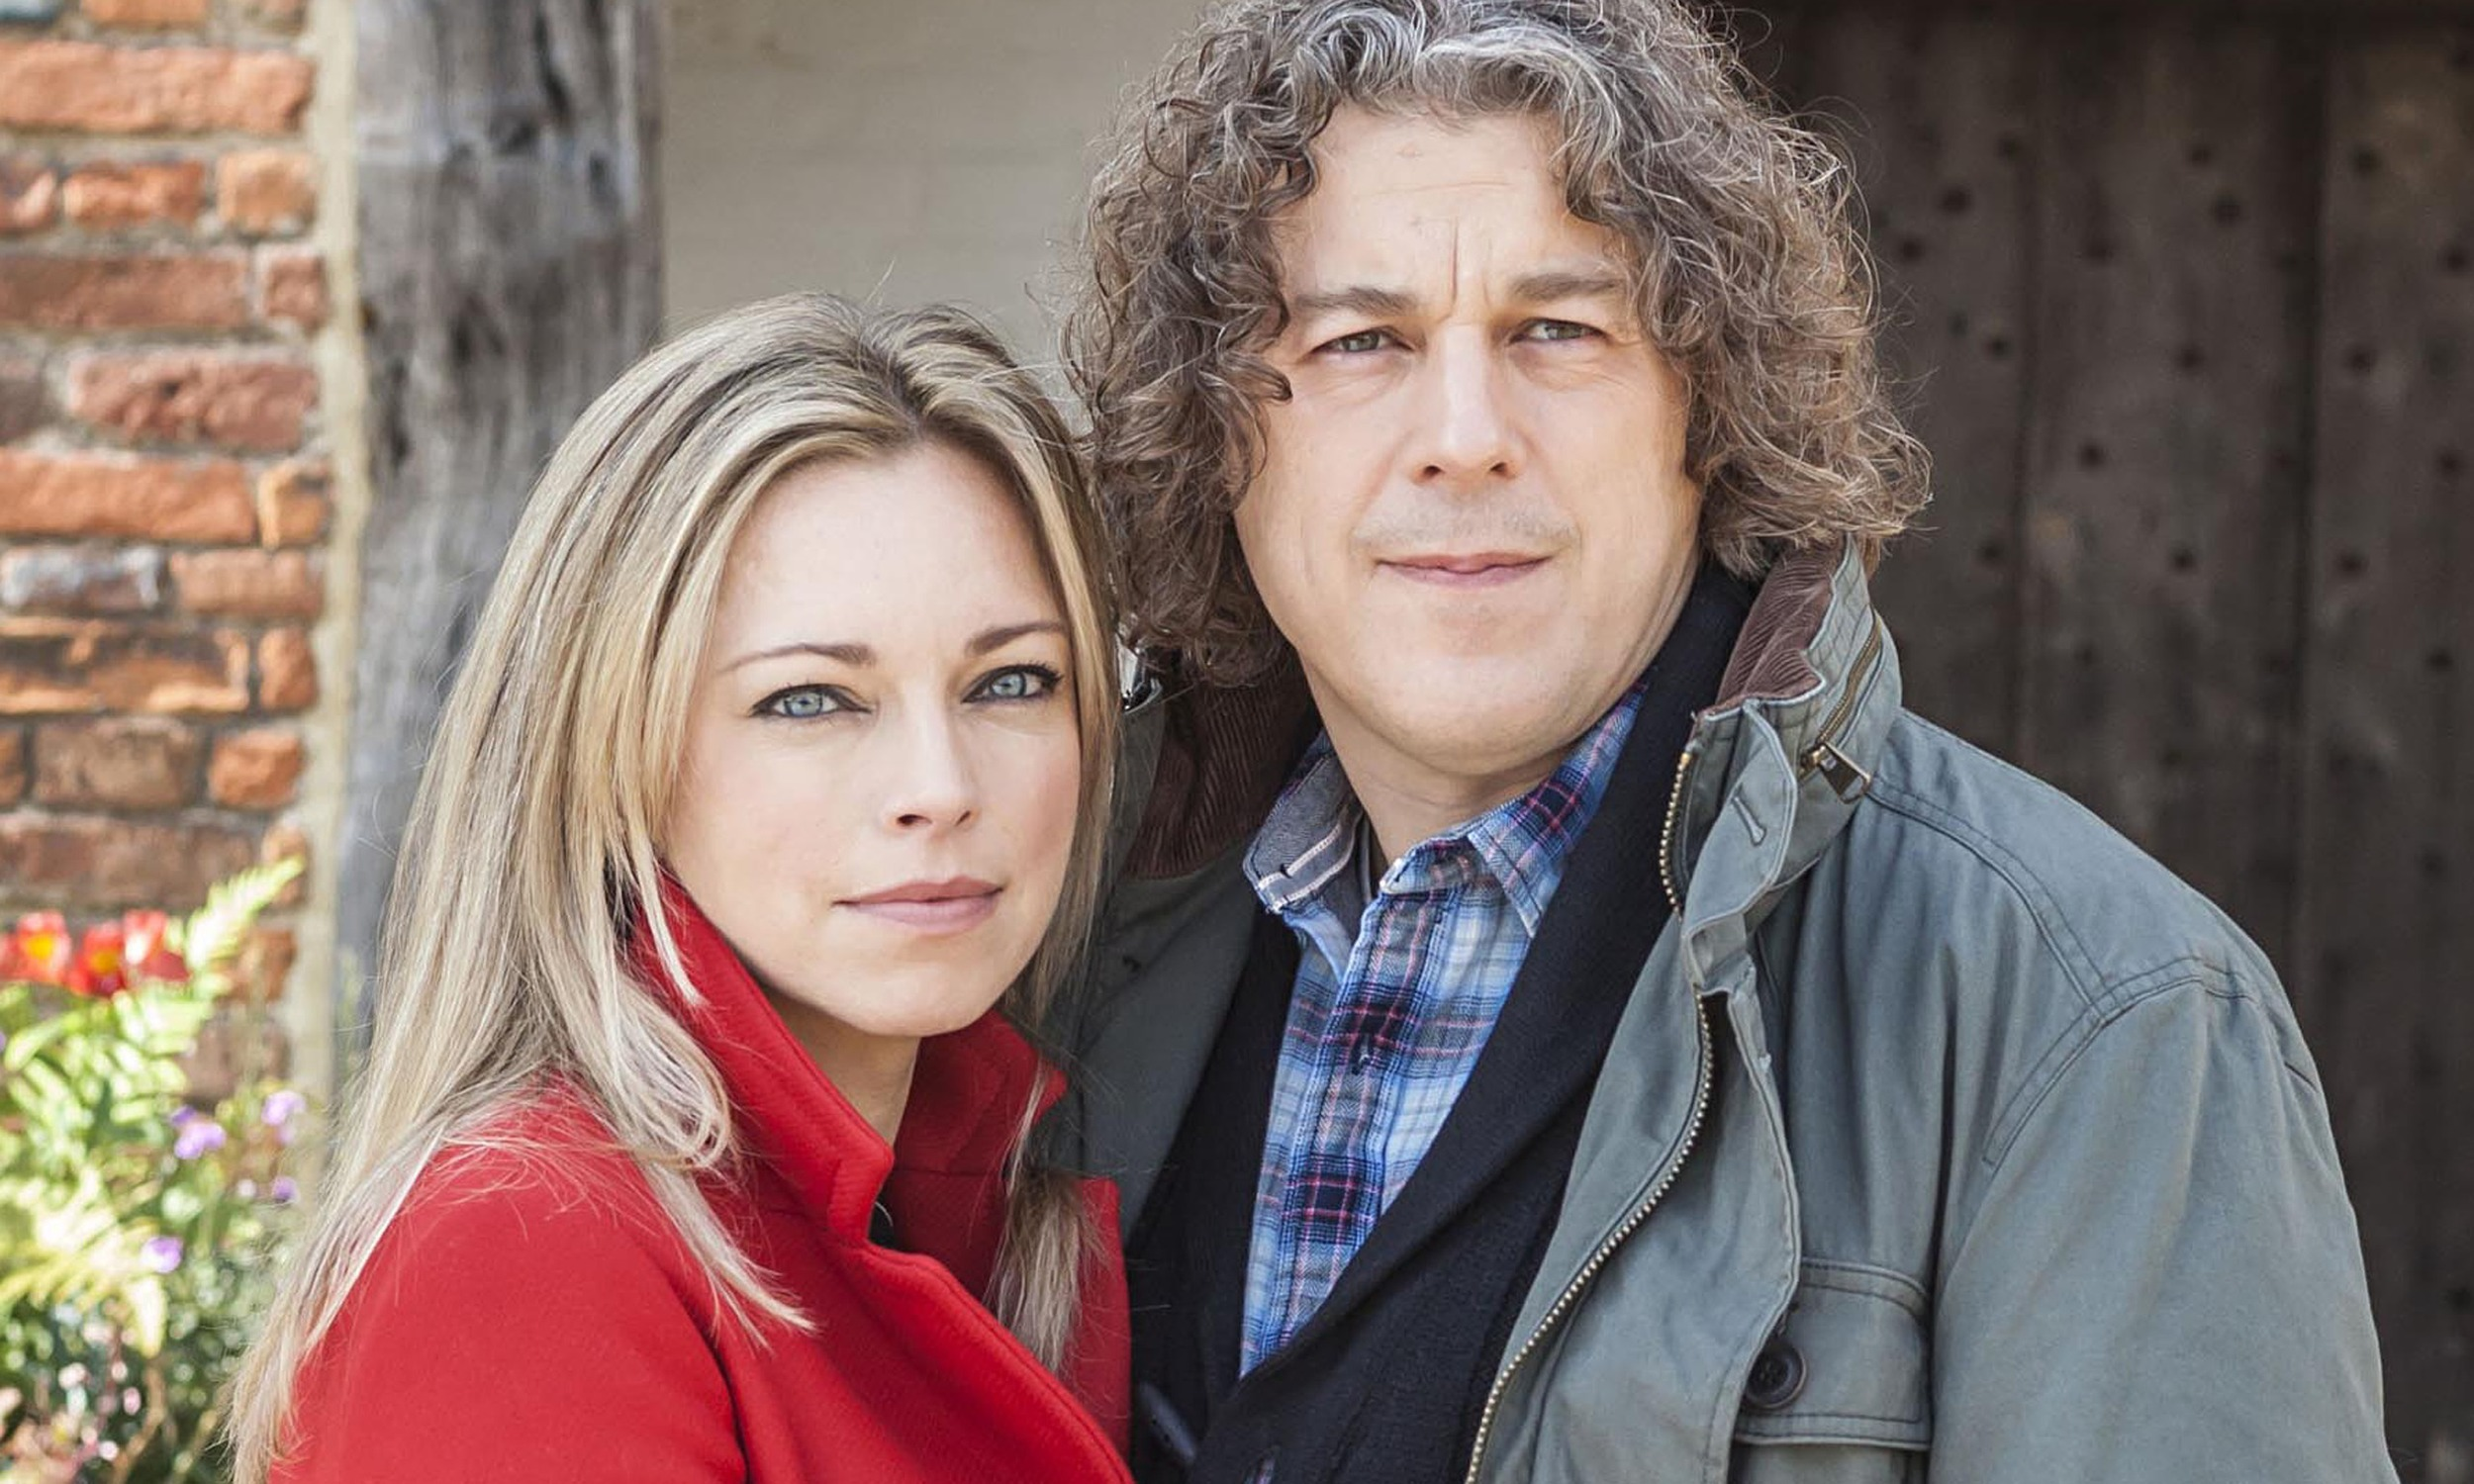 Jonathan-Creek-014.jpg